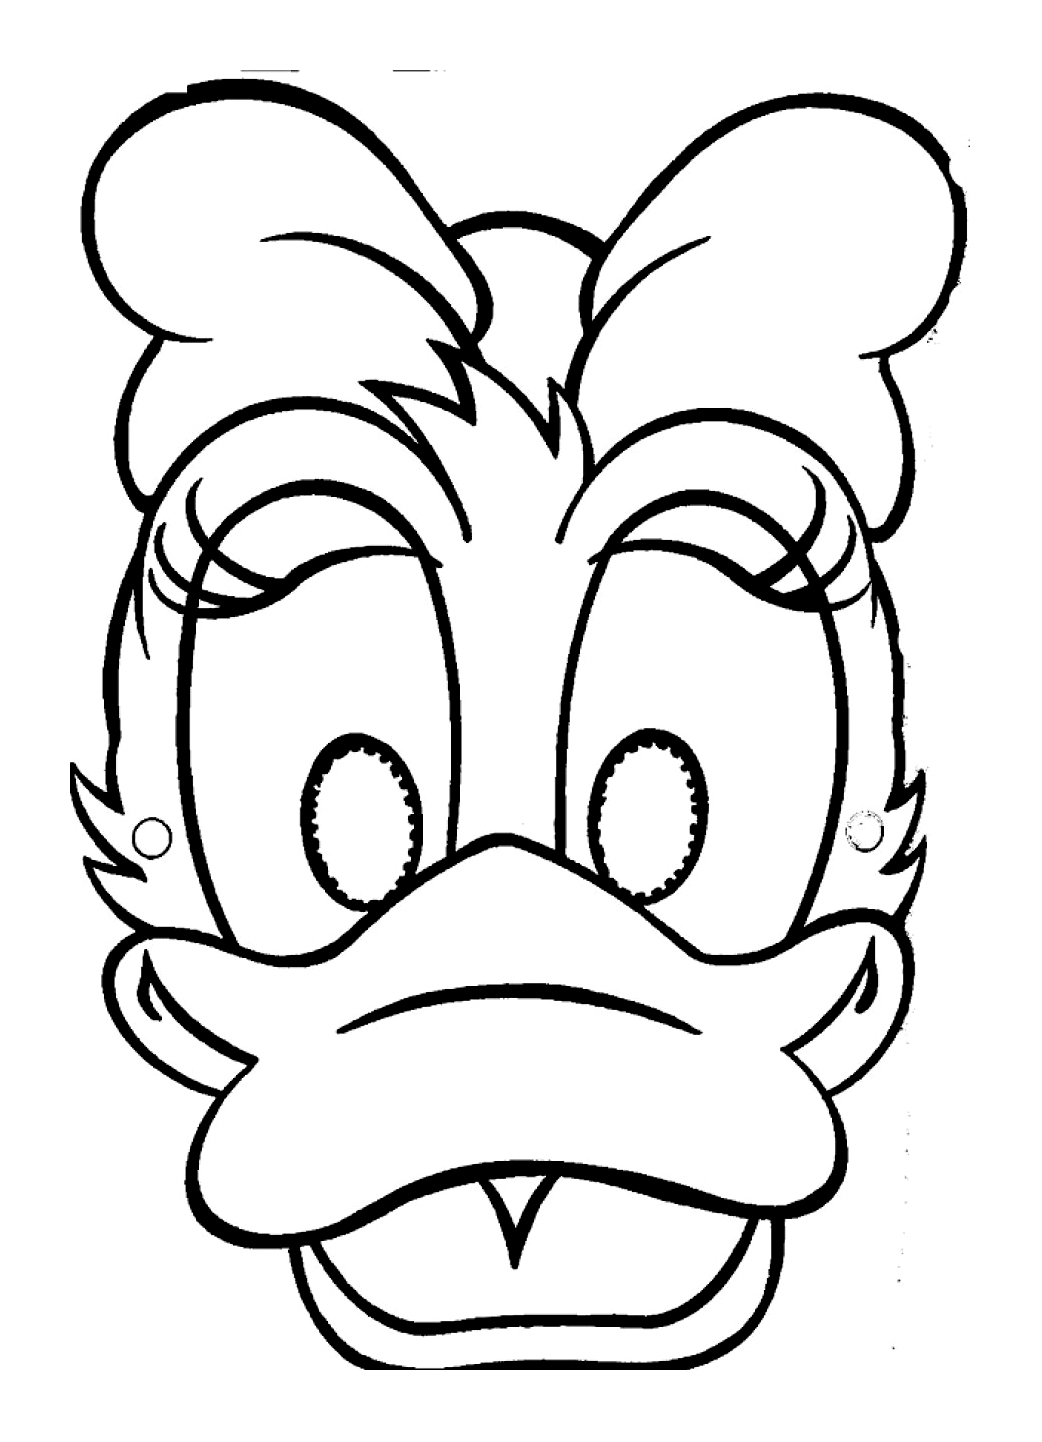 Daisy coloring page to download